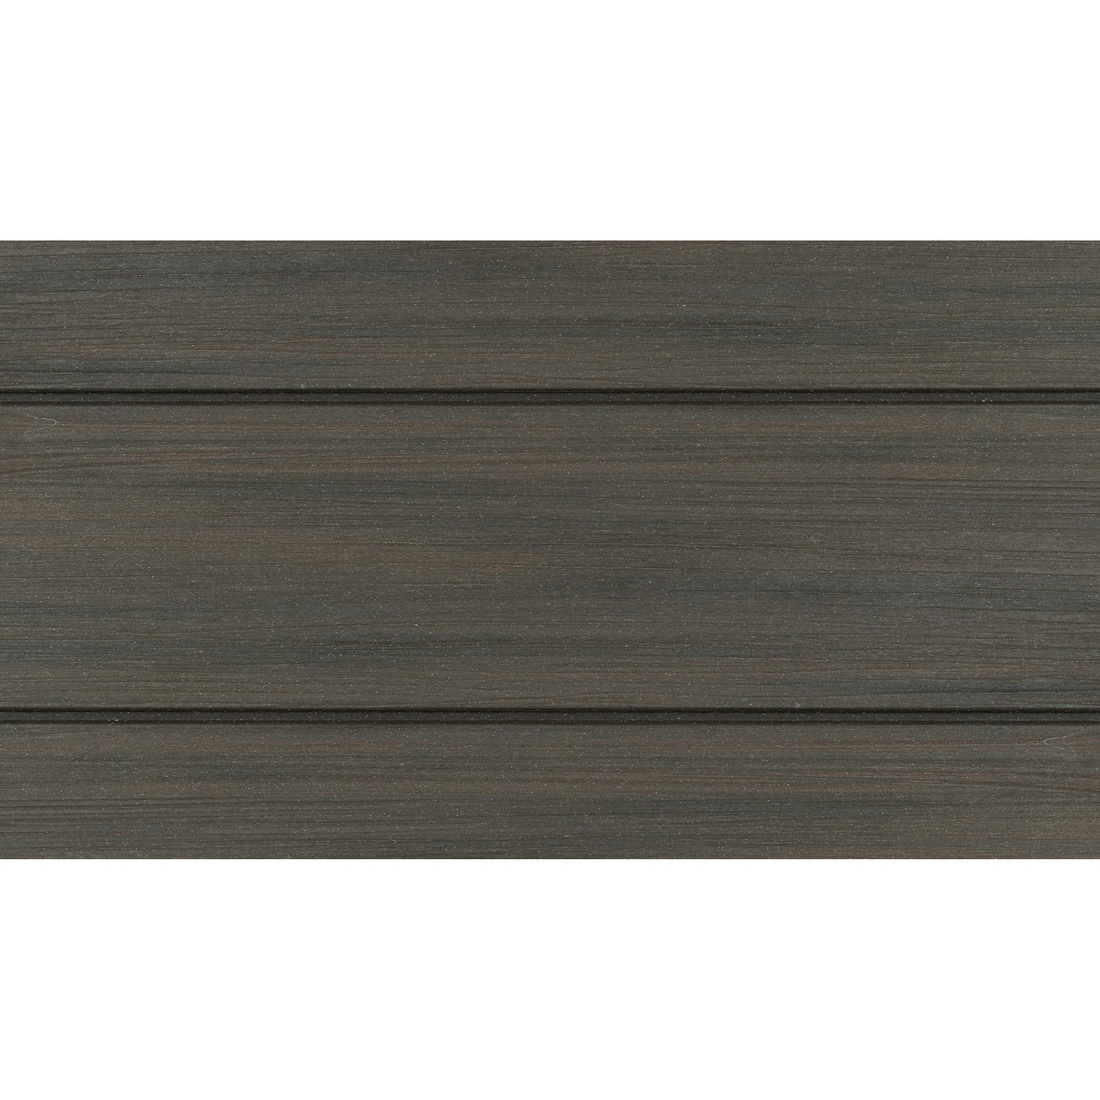 Territory Woodlands 16x455x3030mm Panel Smoked 2 Sheet